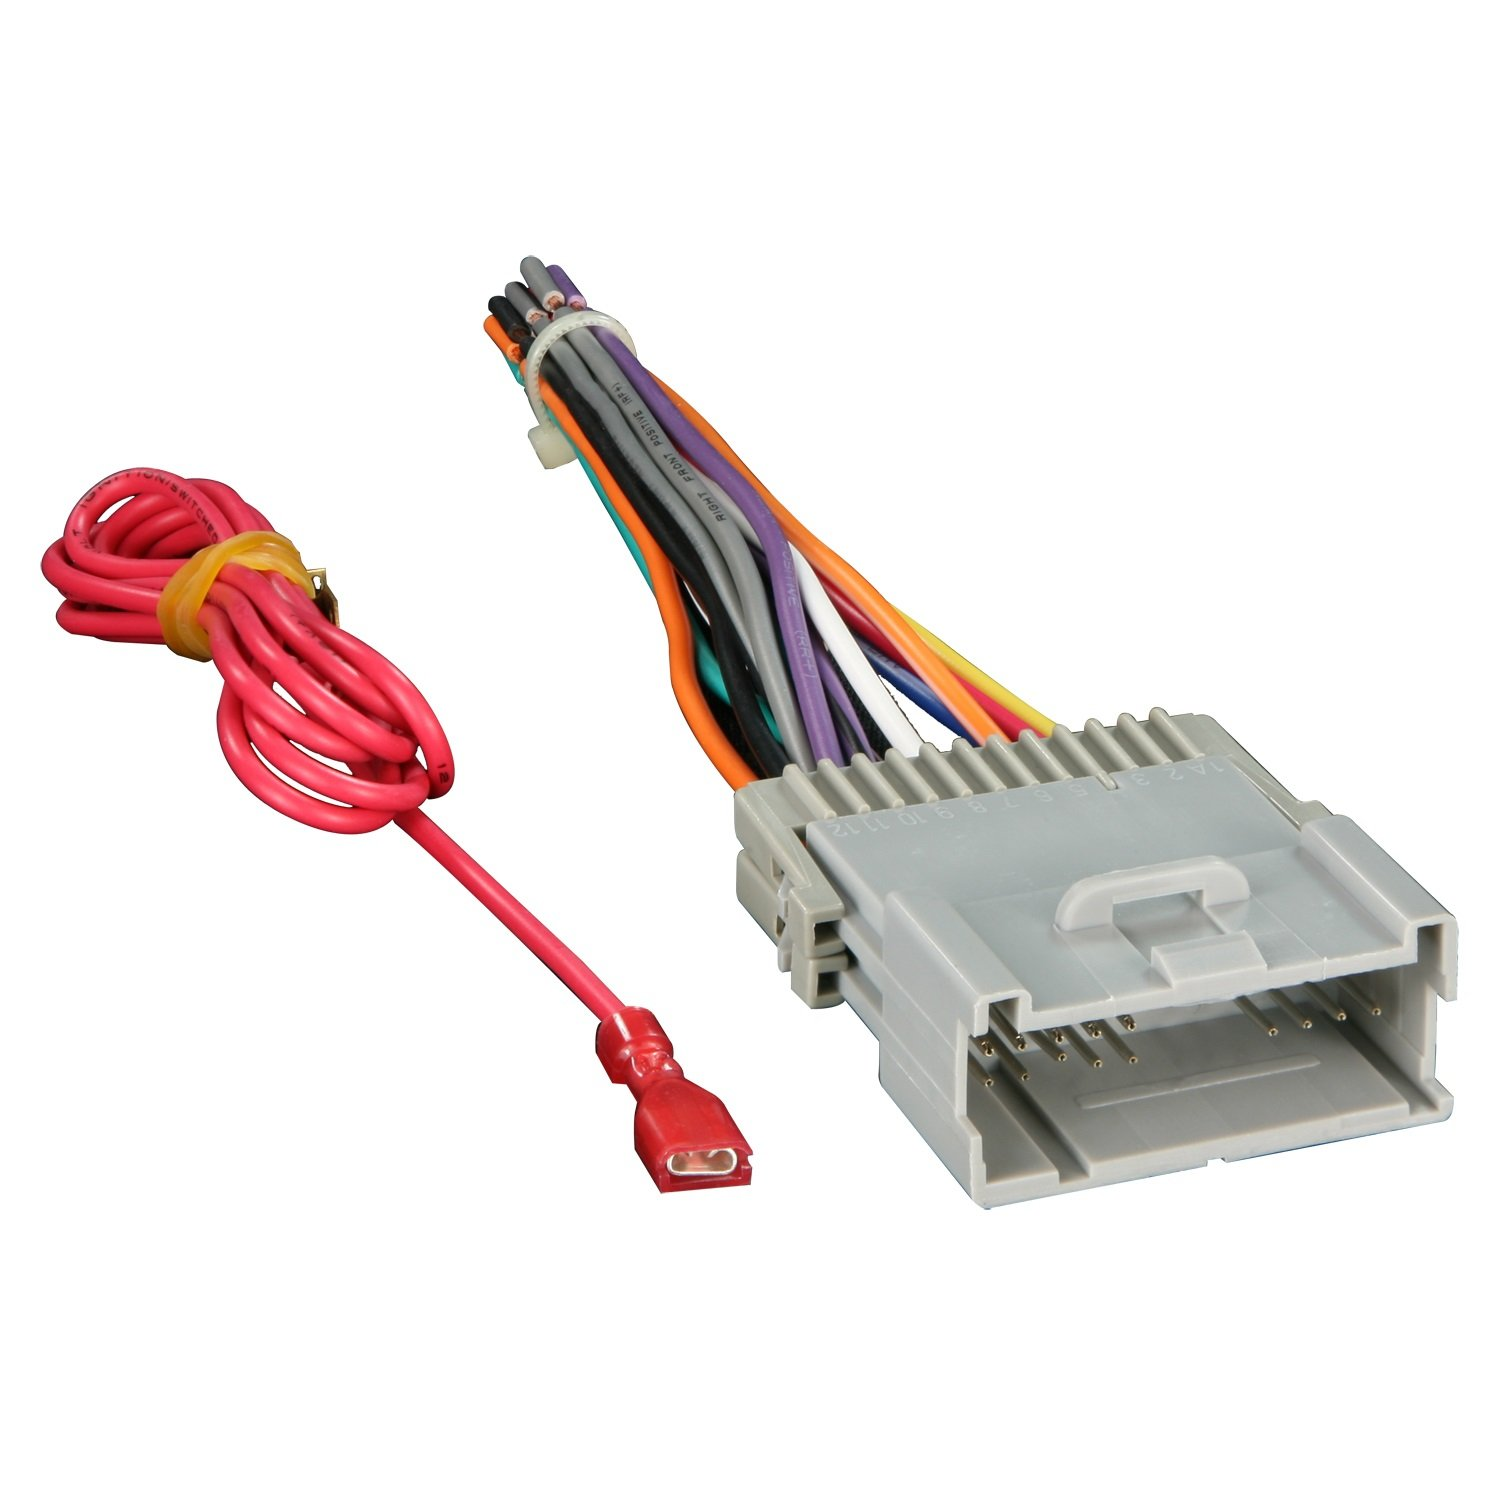 61eewxp9orL._SL1500_ amazon com metra 70 2003 radio wiring harness for gm 98 08  at sewacar.co